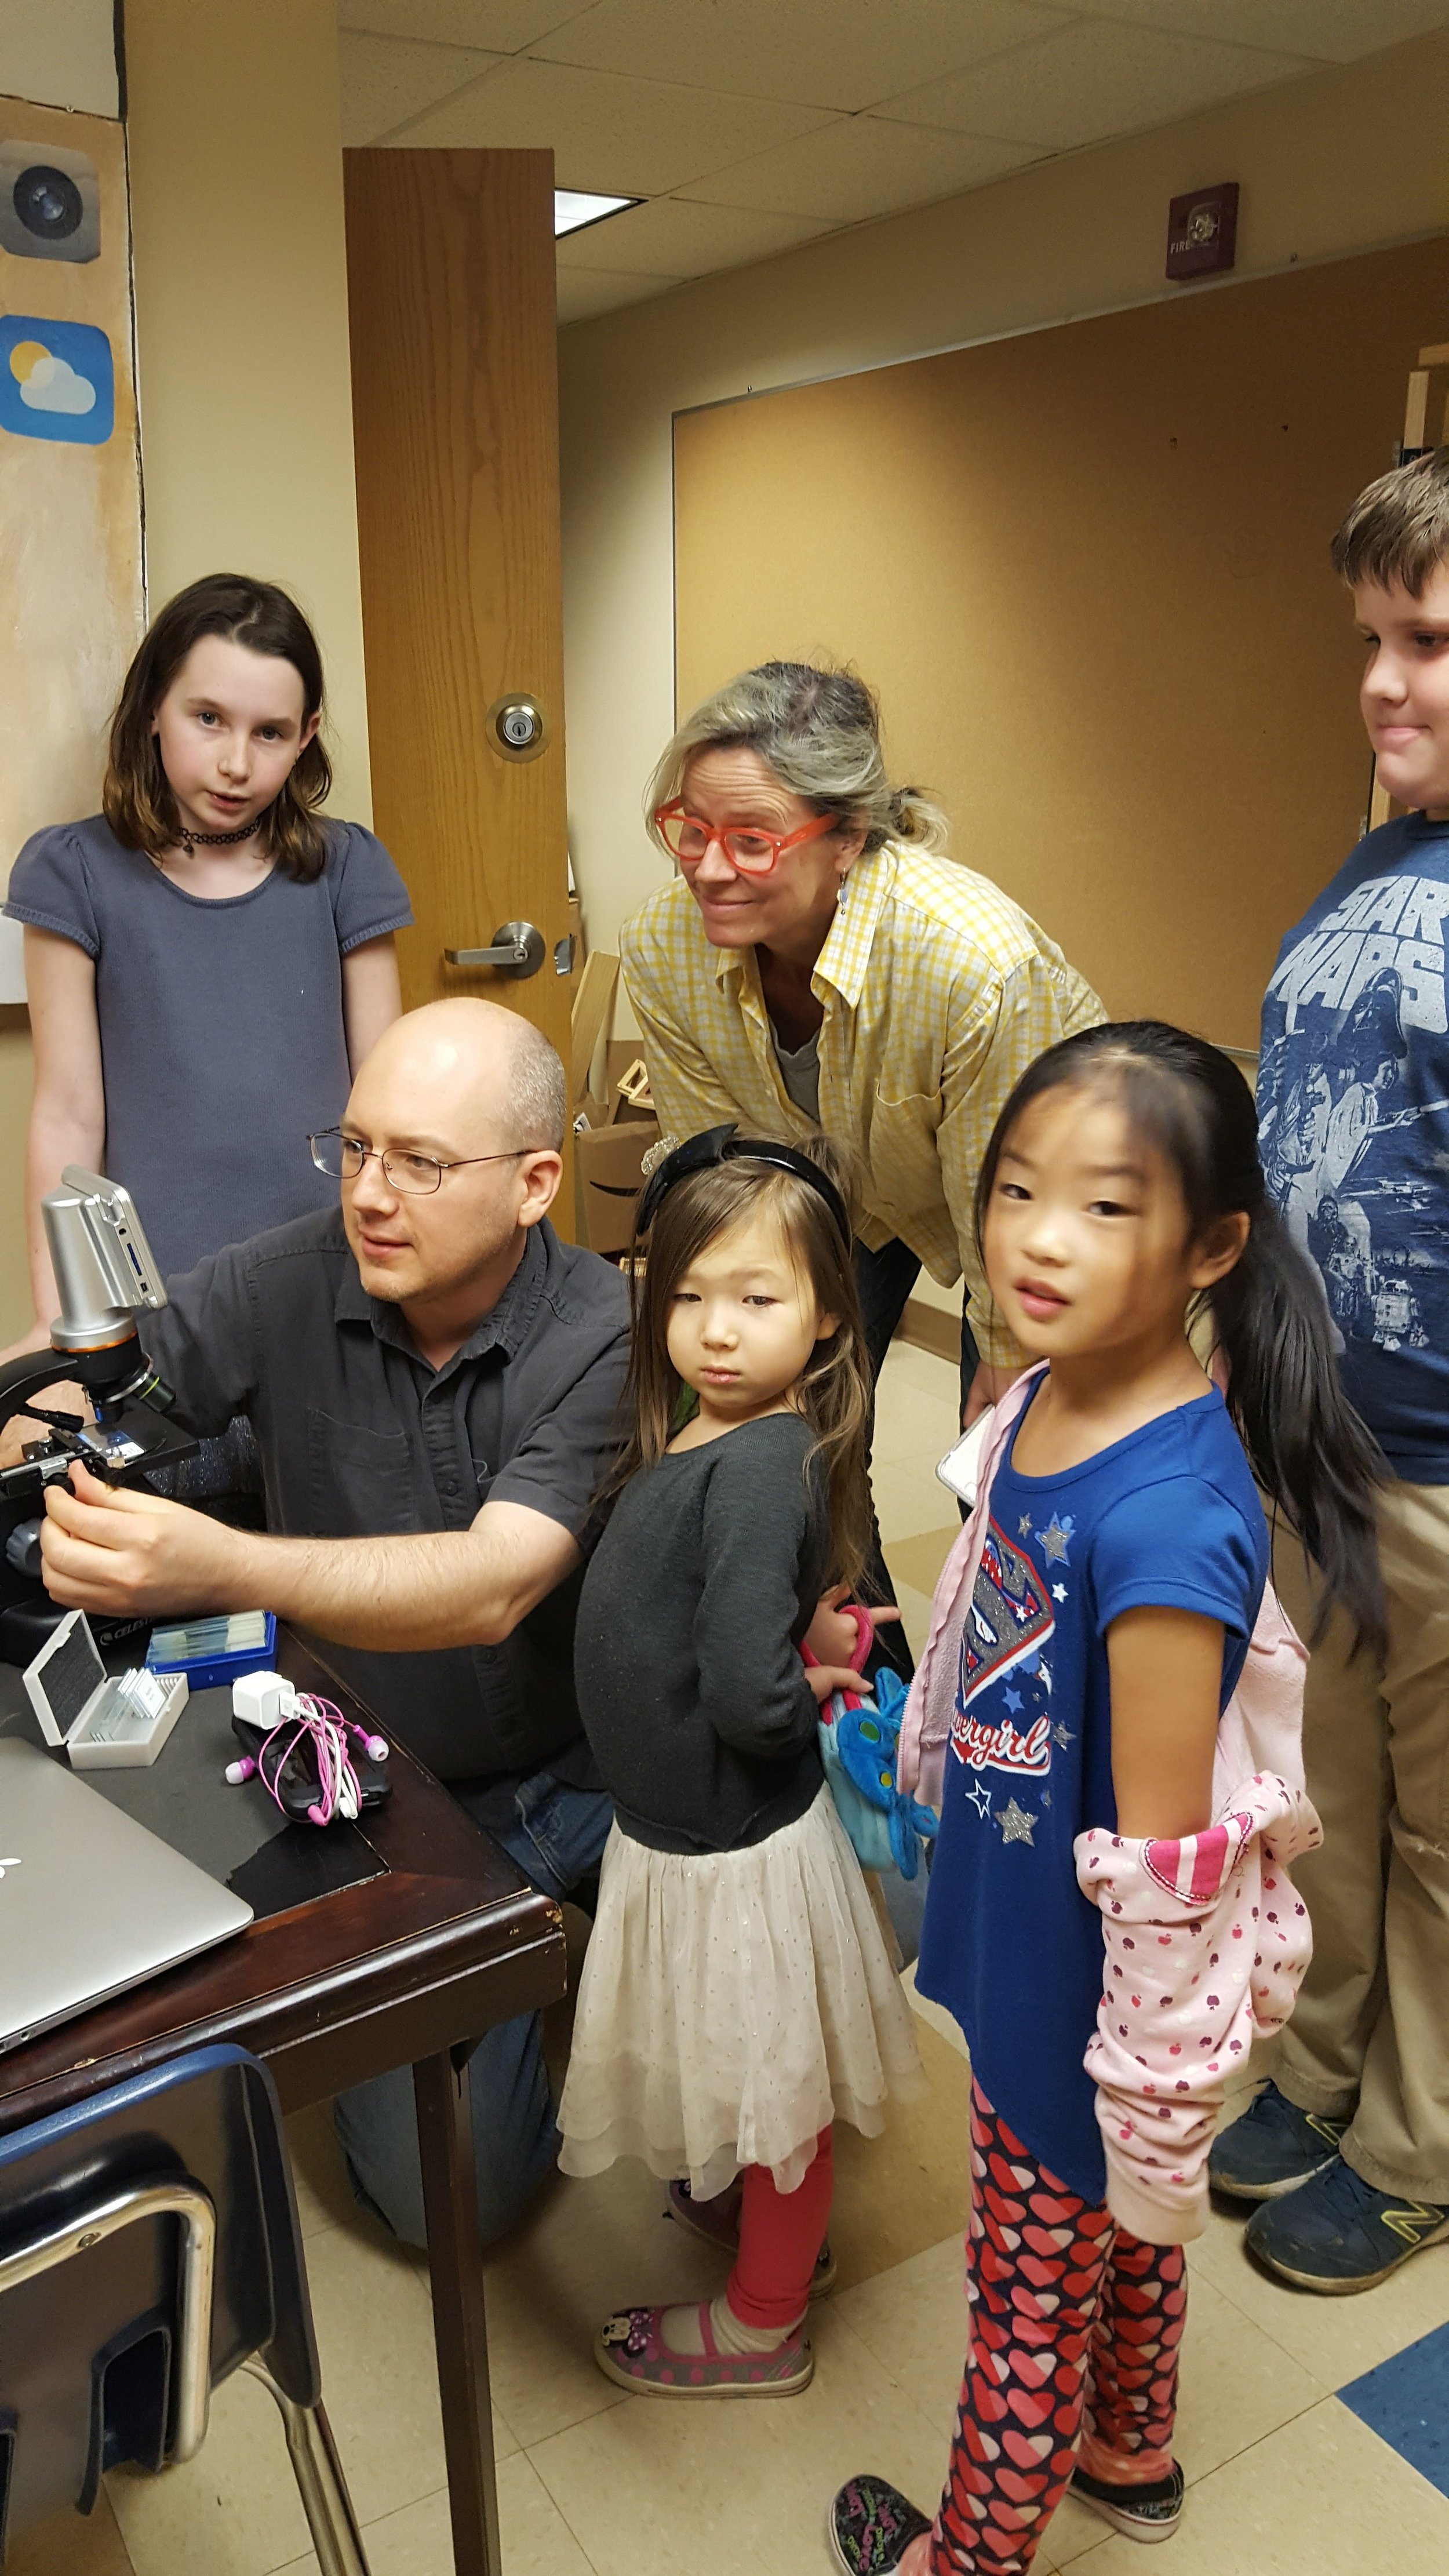 Staff figure out how to use a new microscope as students look on at A&I in Baltimore. Other staff jobs: giving out band-aids, emptying trash cans, answering questions, paperwork, advocating for the philosophy of the school.